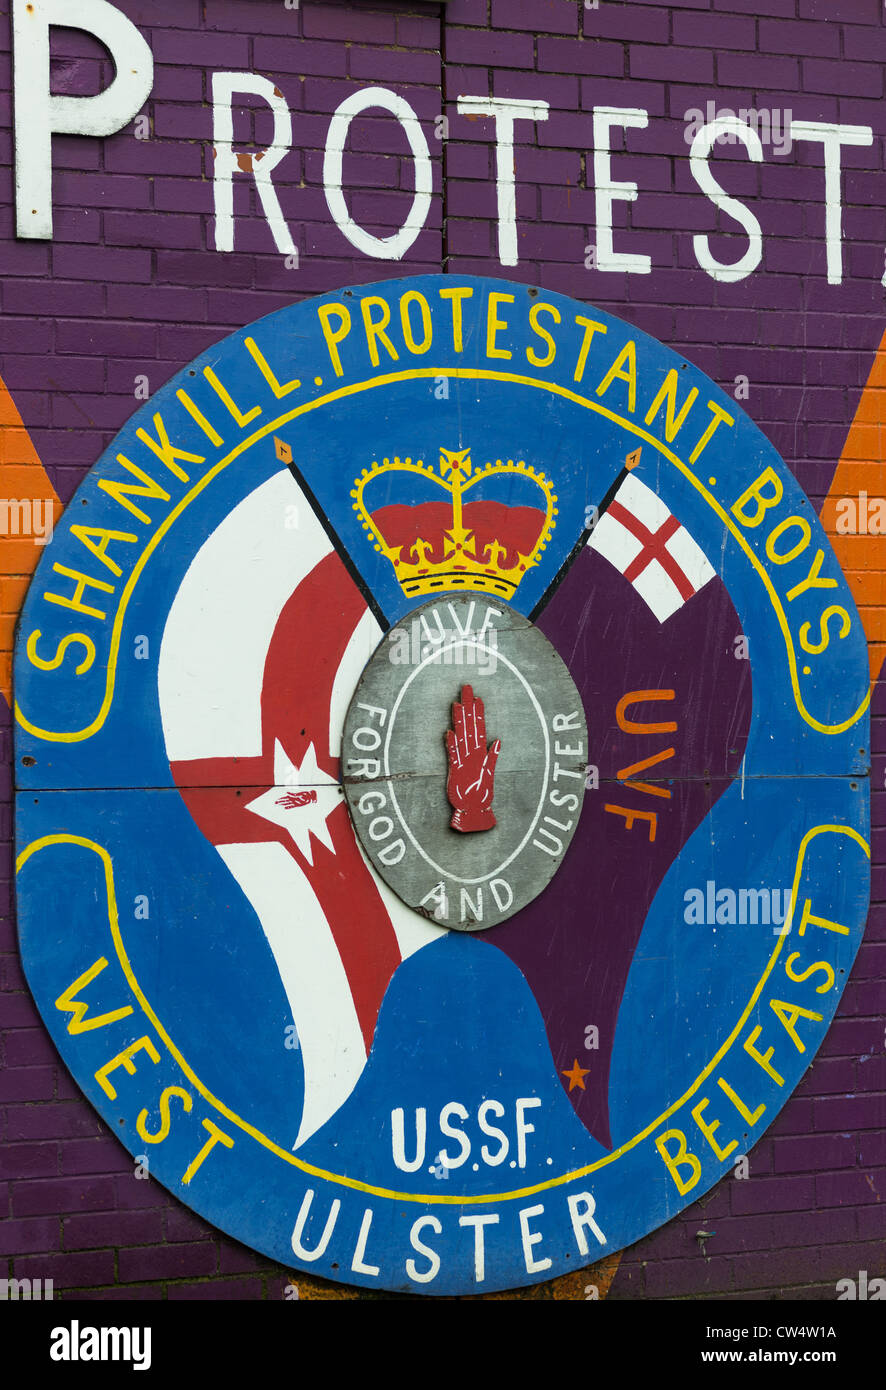 An Ulster Volunteer Force (UVF) emblem (loyalist paramilitary group) on Shankill road, Belfast in Northern Ireland. - Stock Image